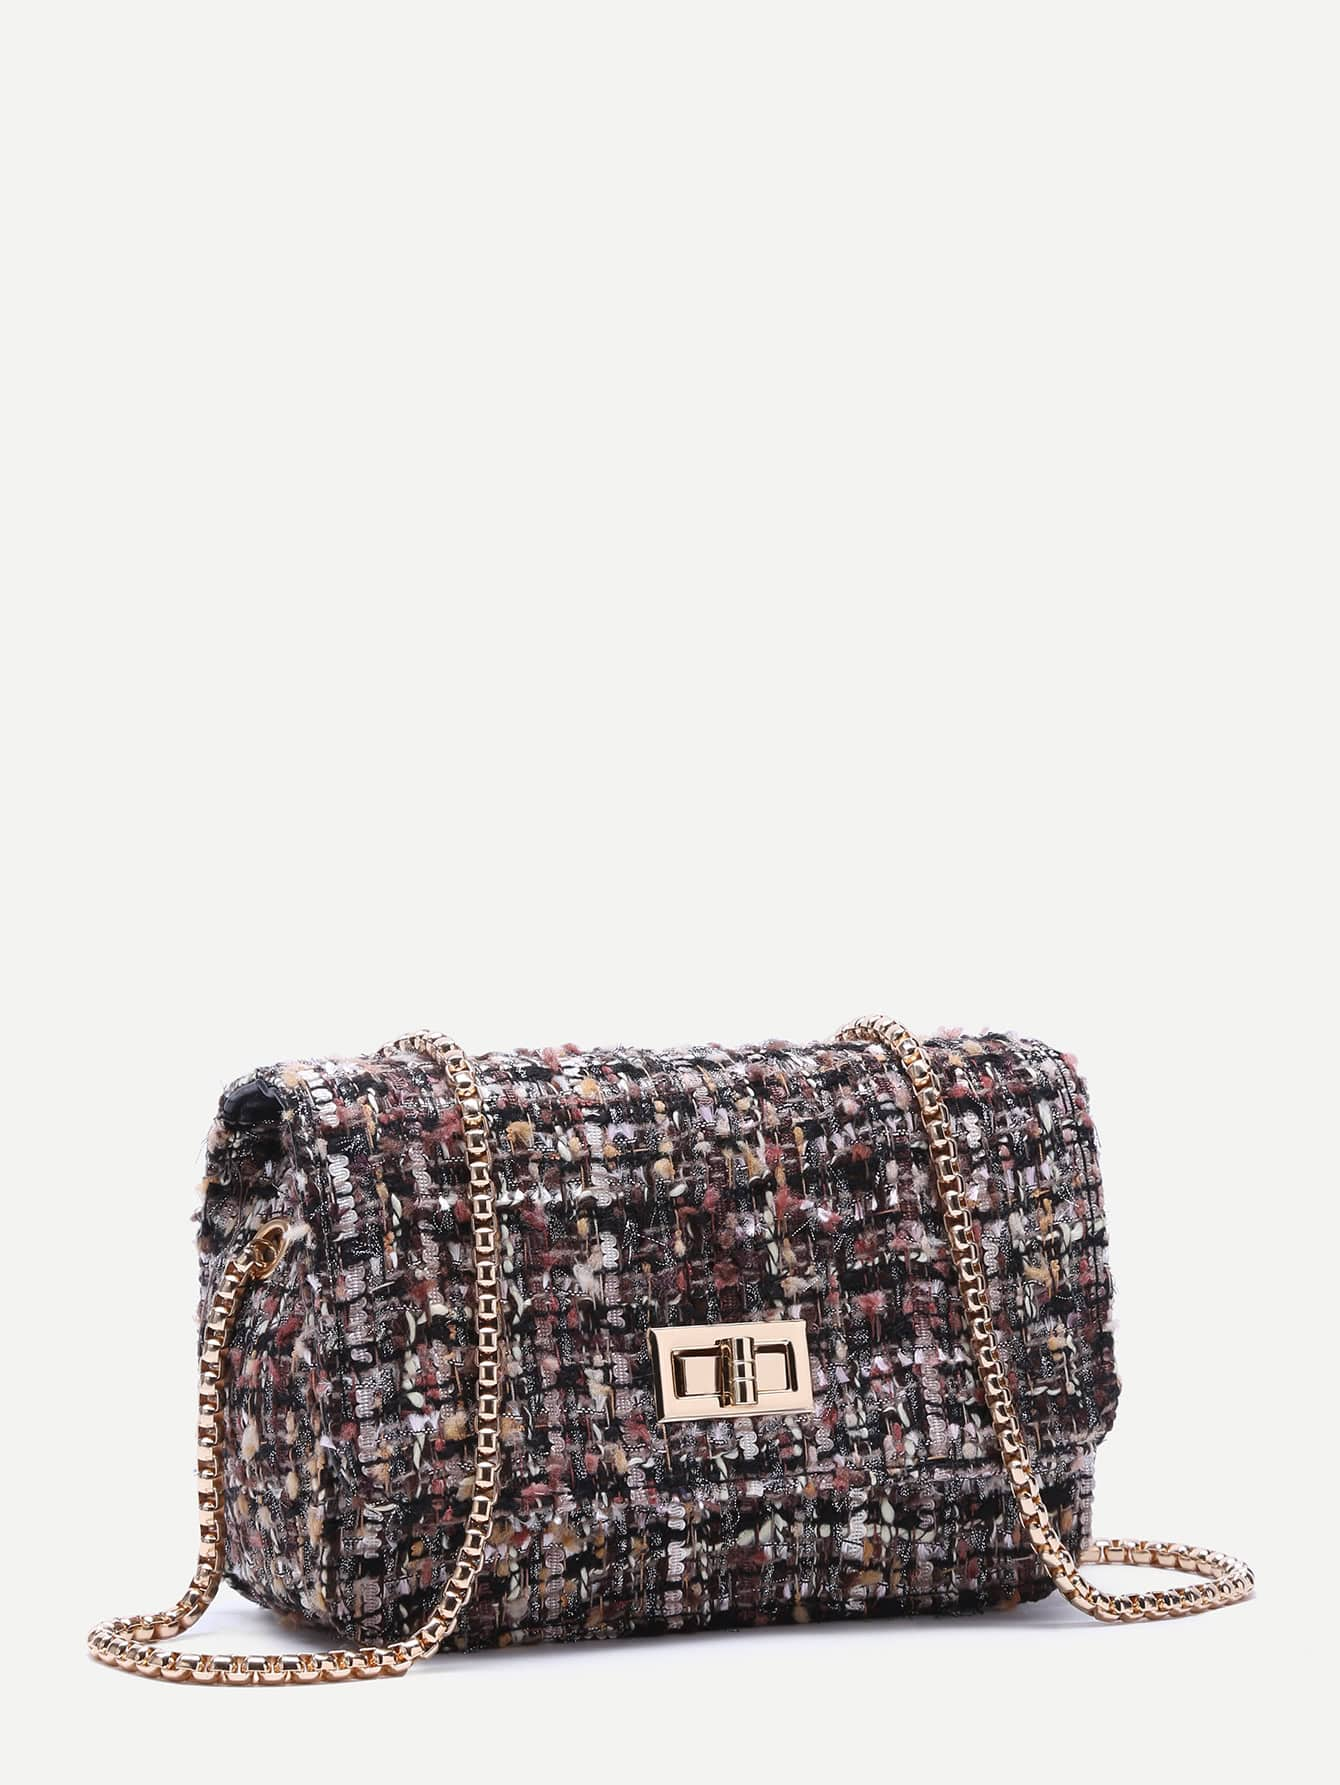 Multicolor Woolen Box Bag With Chain Strap